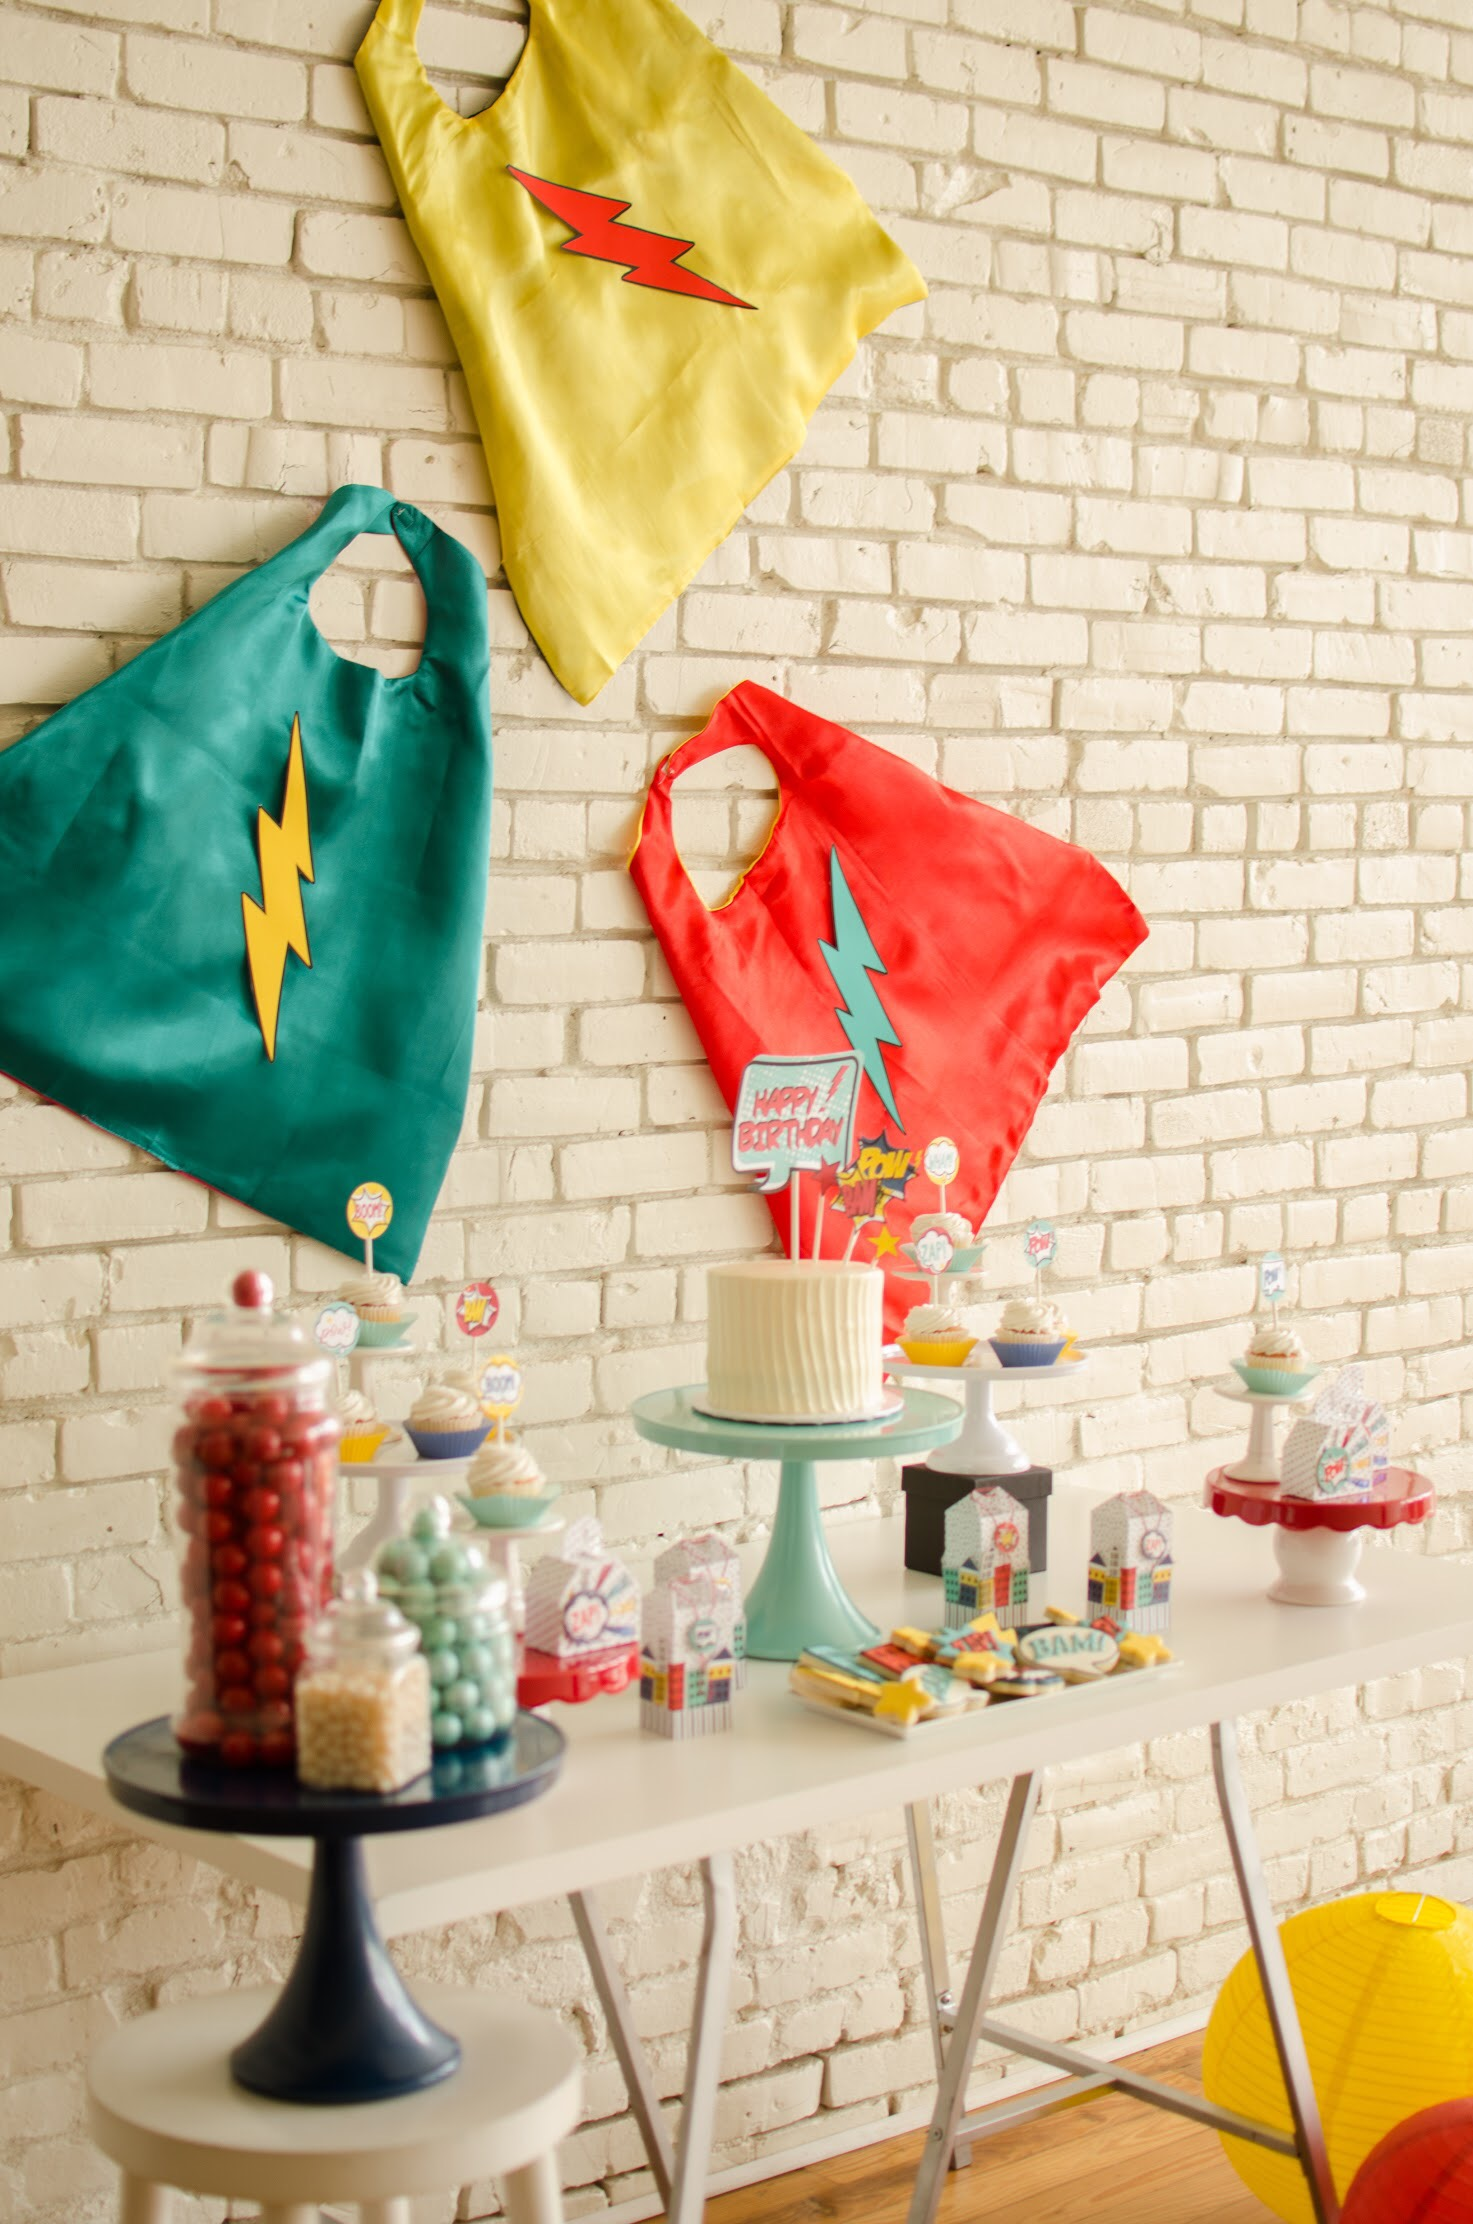 Red, yellow, and blue superhero party ideas from Mint Event Design